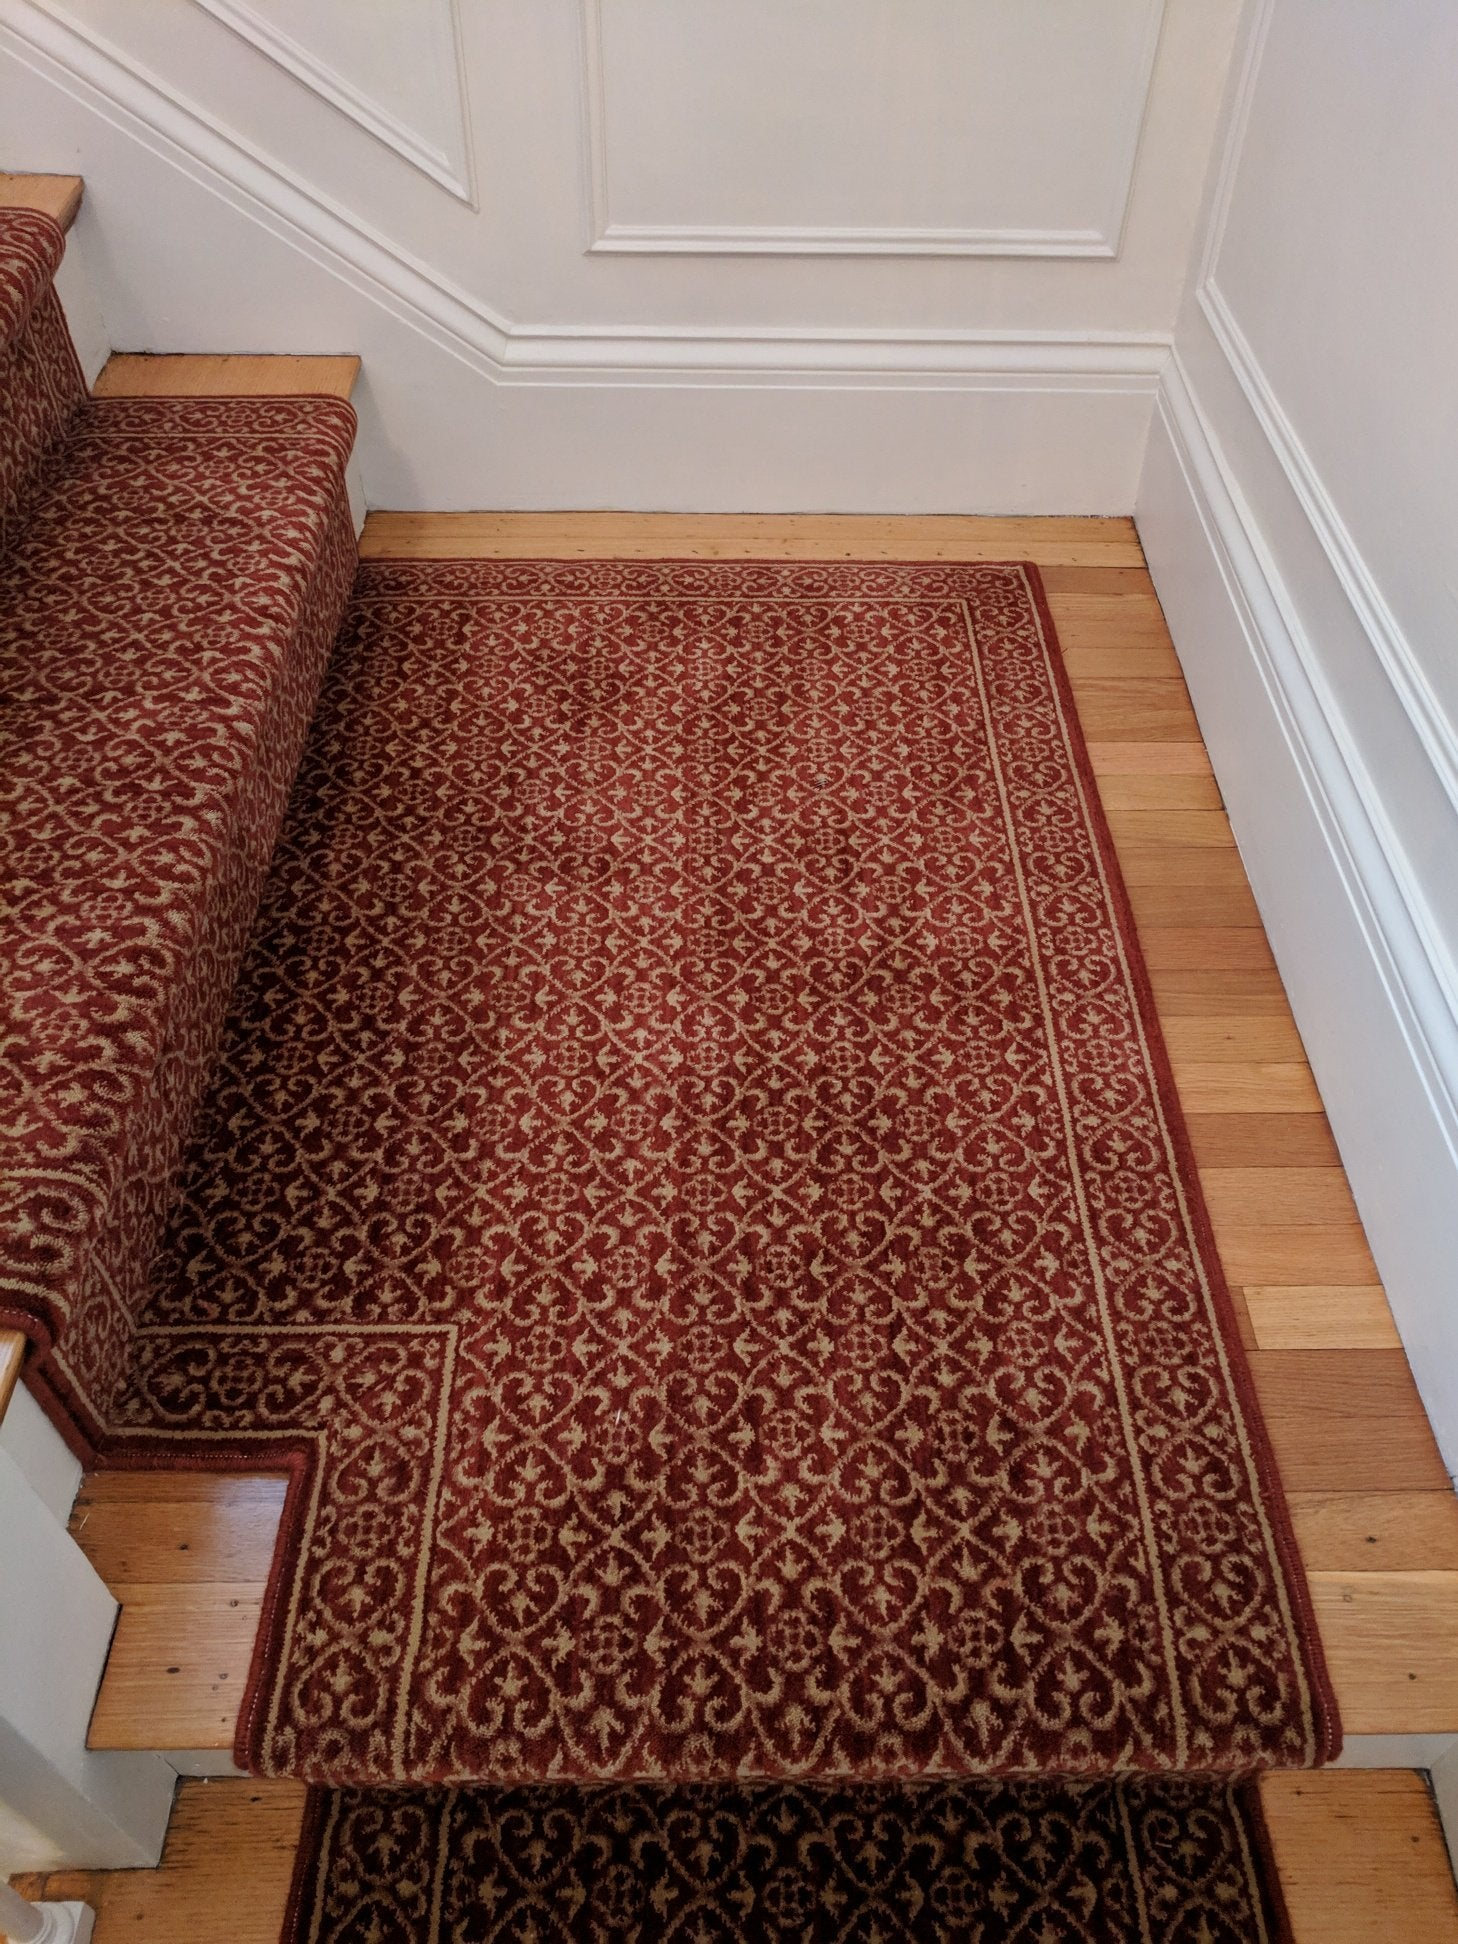 Nourison Stair Runner Chateau Riems RM21 Ruby Stair Runners 27in Sold By The Foot